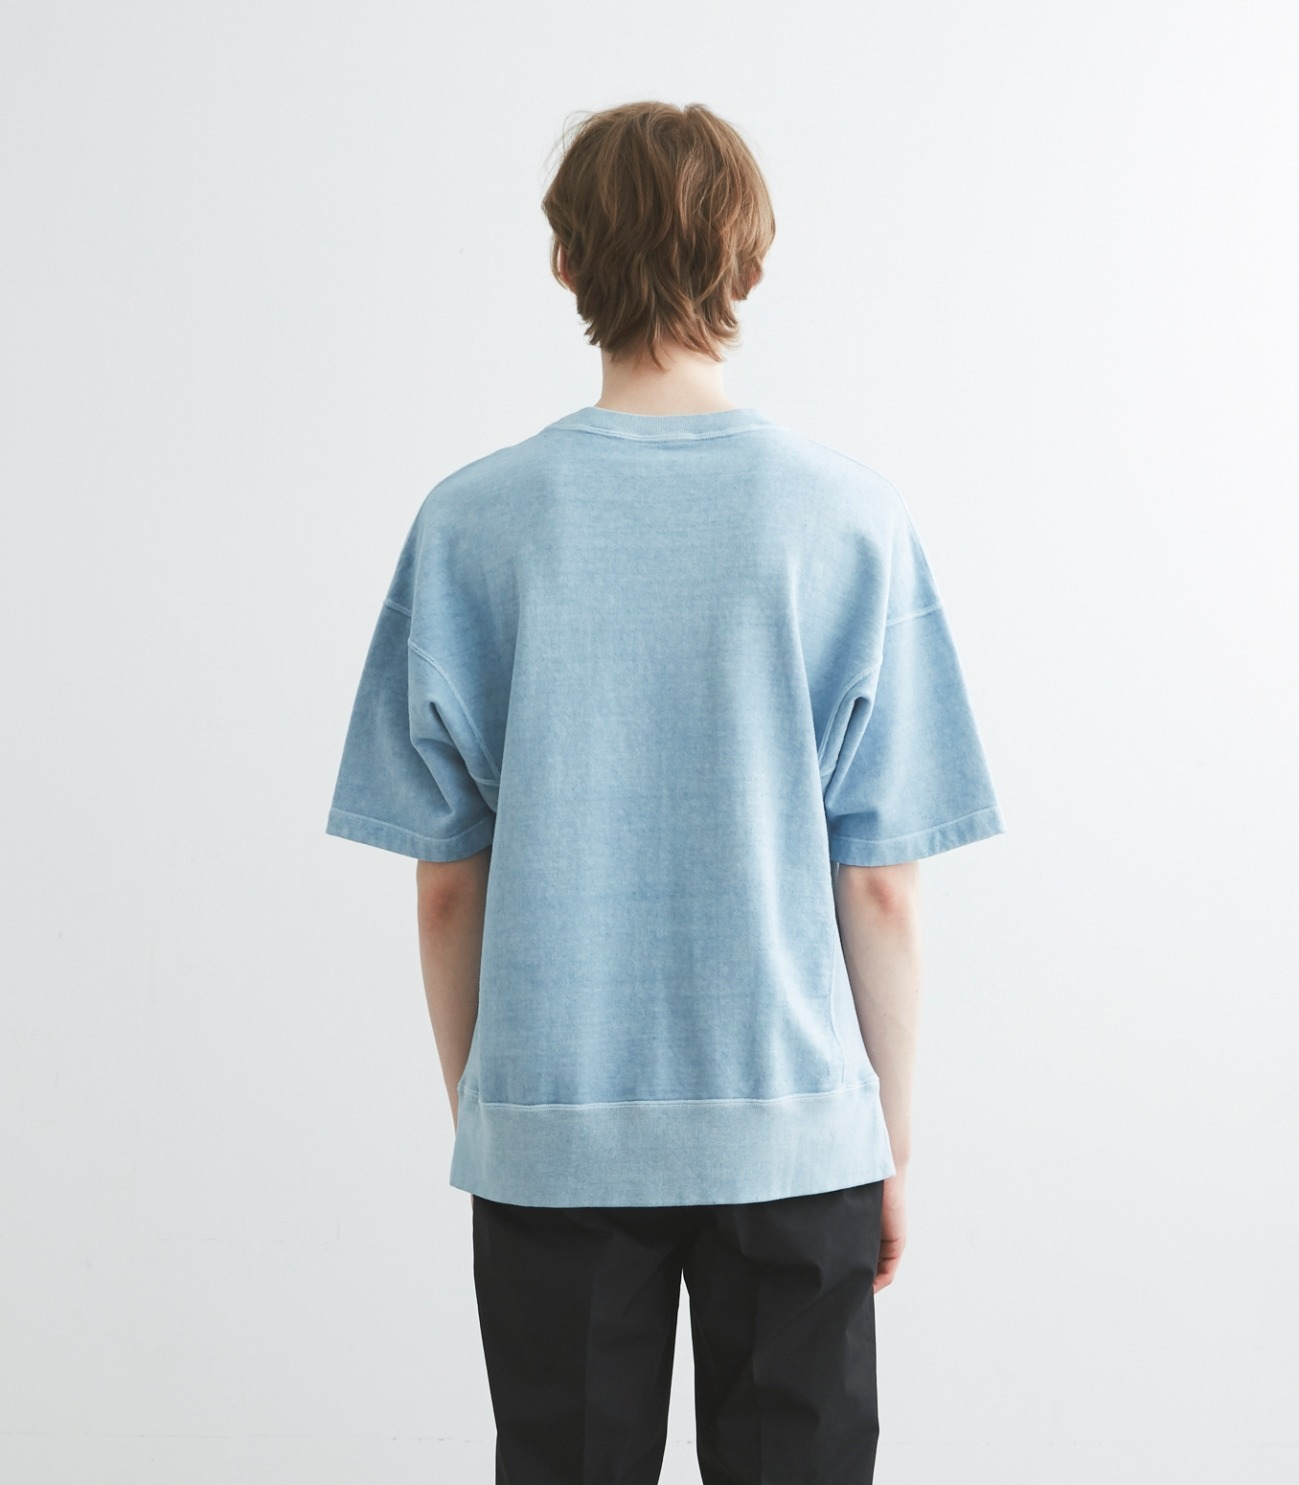 pigment dye cotton s/s  sweat 詳細画像 blue 4